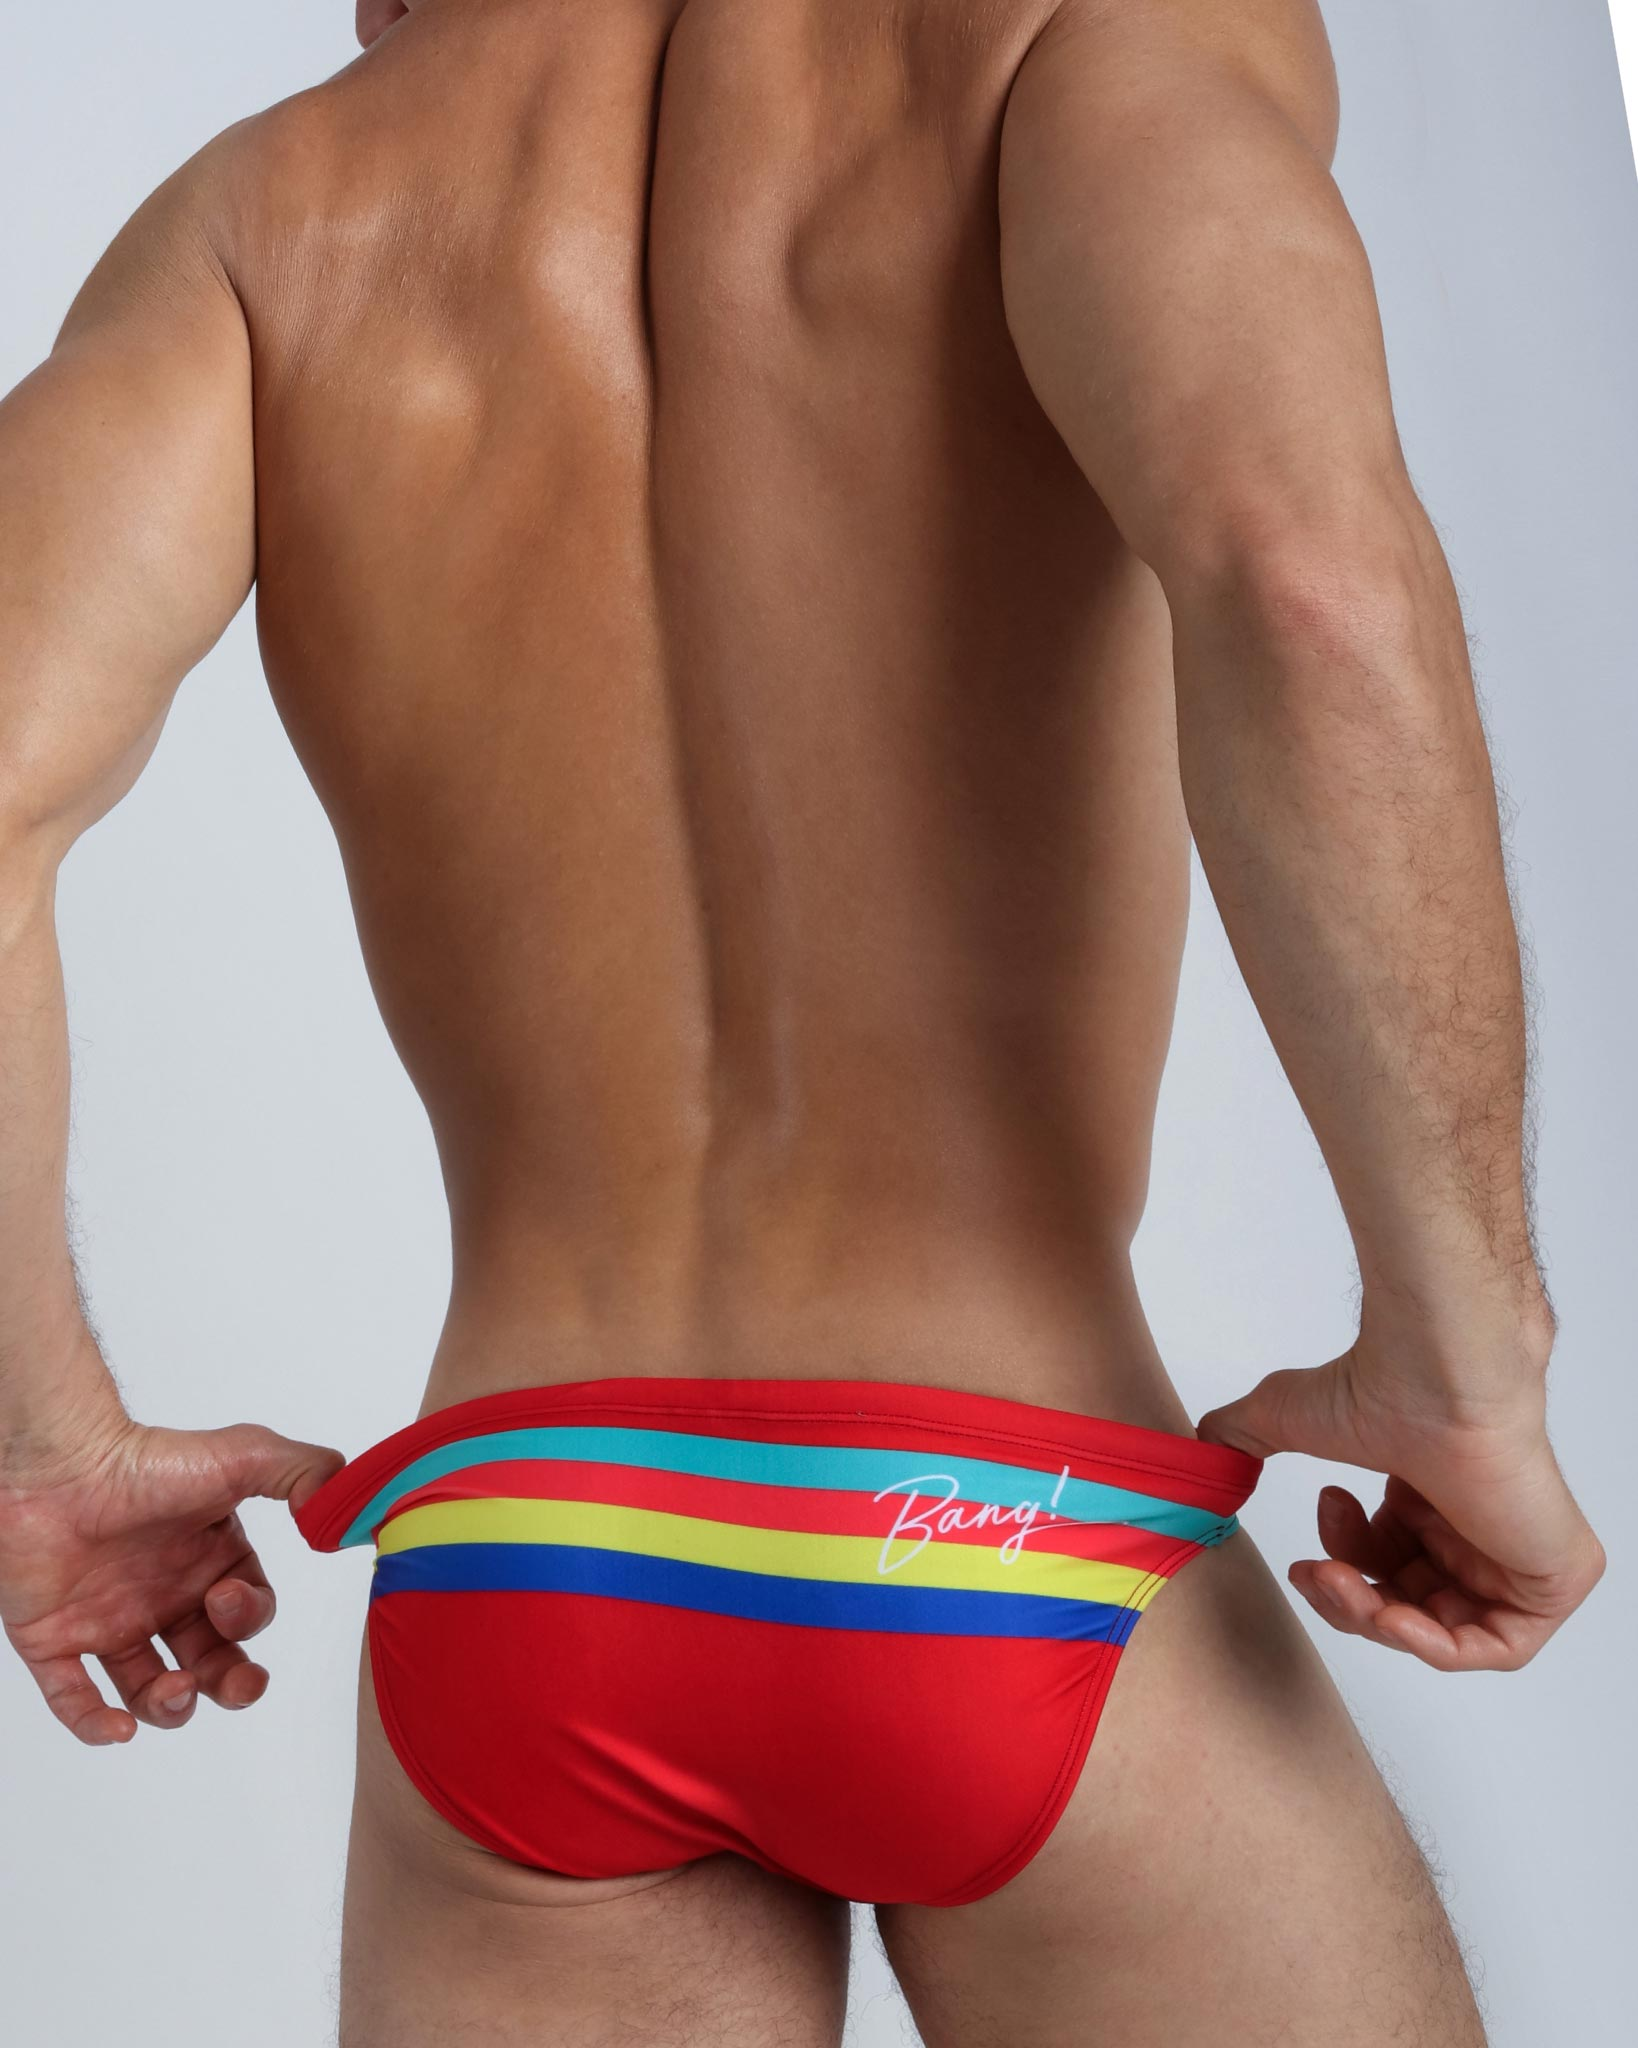 Right side view of a model wearing red men's bikini swimsuit with color stripes in aqua green, bold red, yellow and blue.